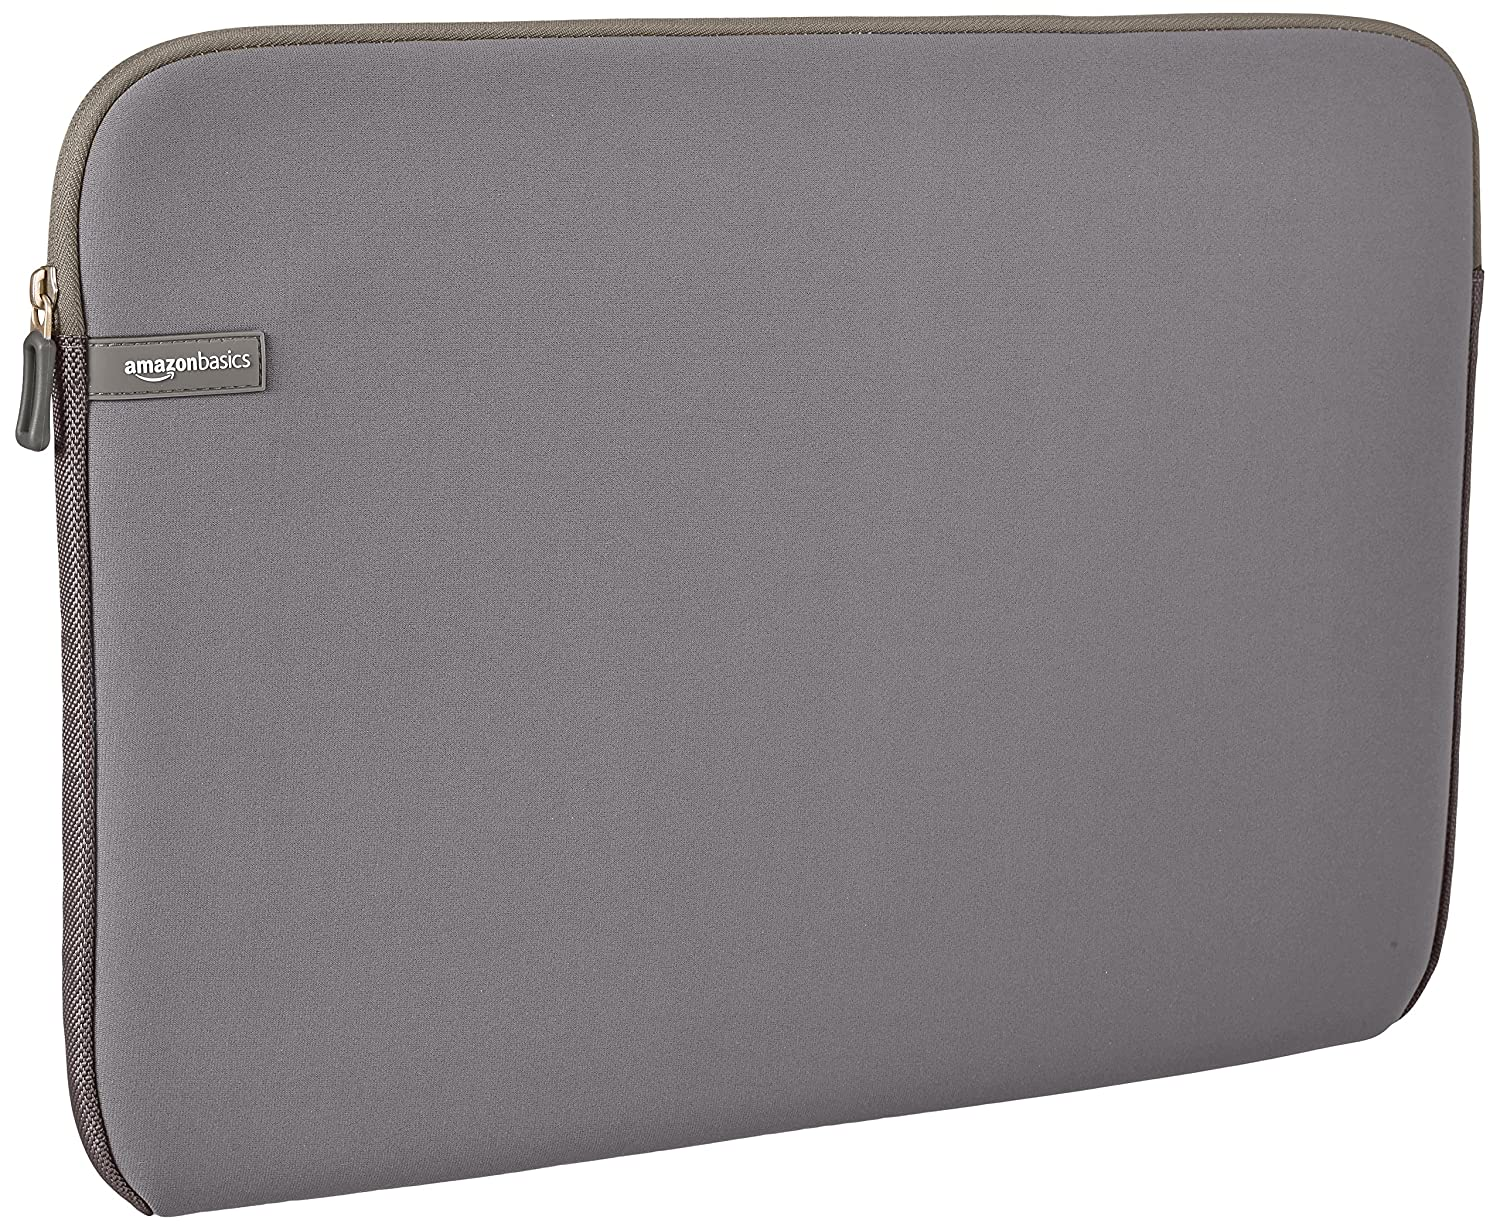 AmazonBasics 17.3 Inch Laptop Computer Sleeve Case - Grey